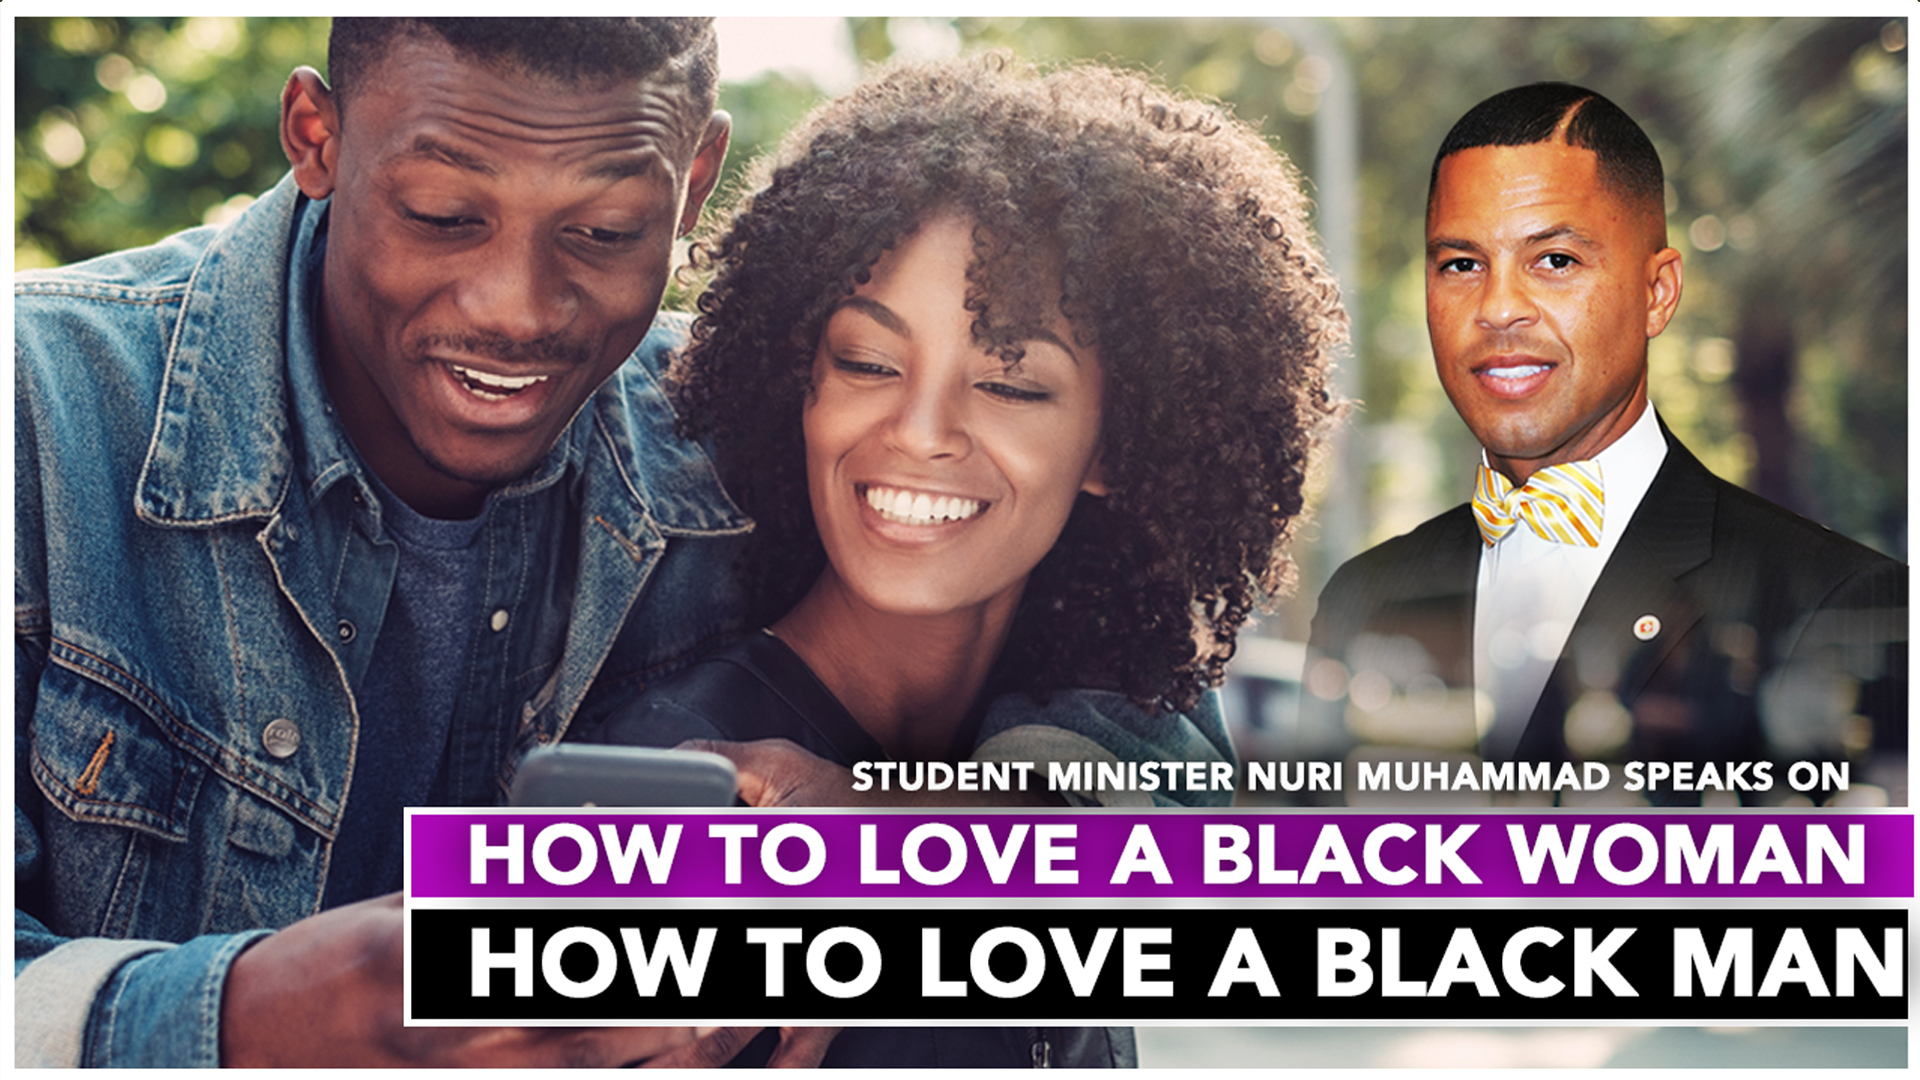 How To Love A Black Woman, How To Love A Black Man